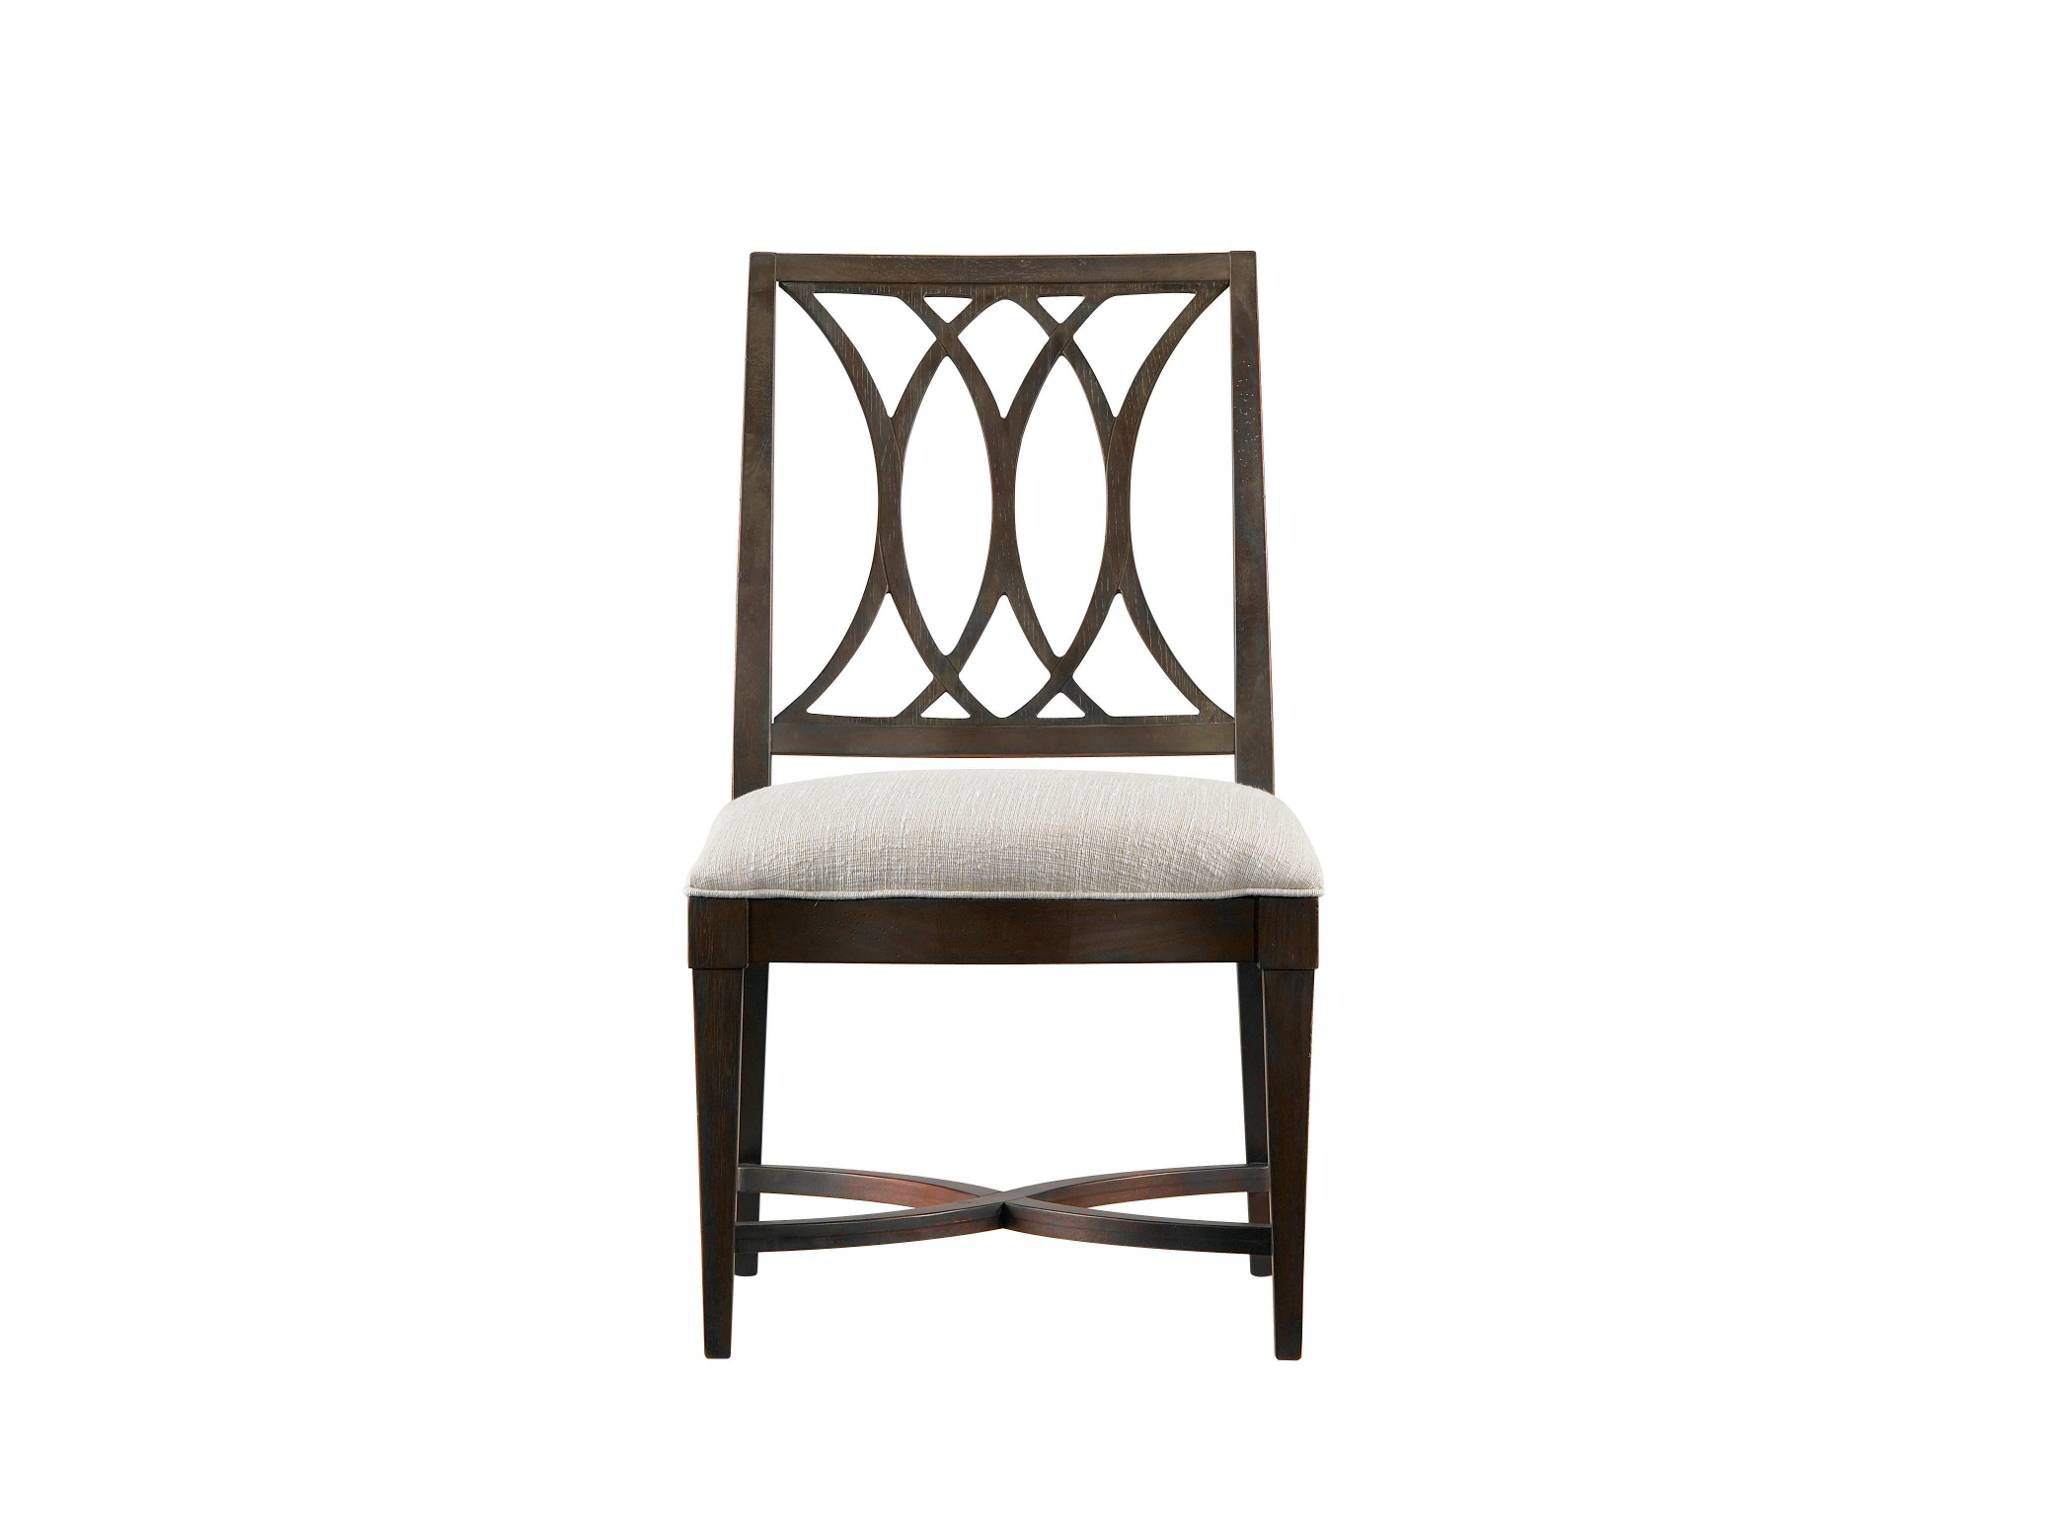 Coastal Living Heritage Coast Side Chair 062 11 60